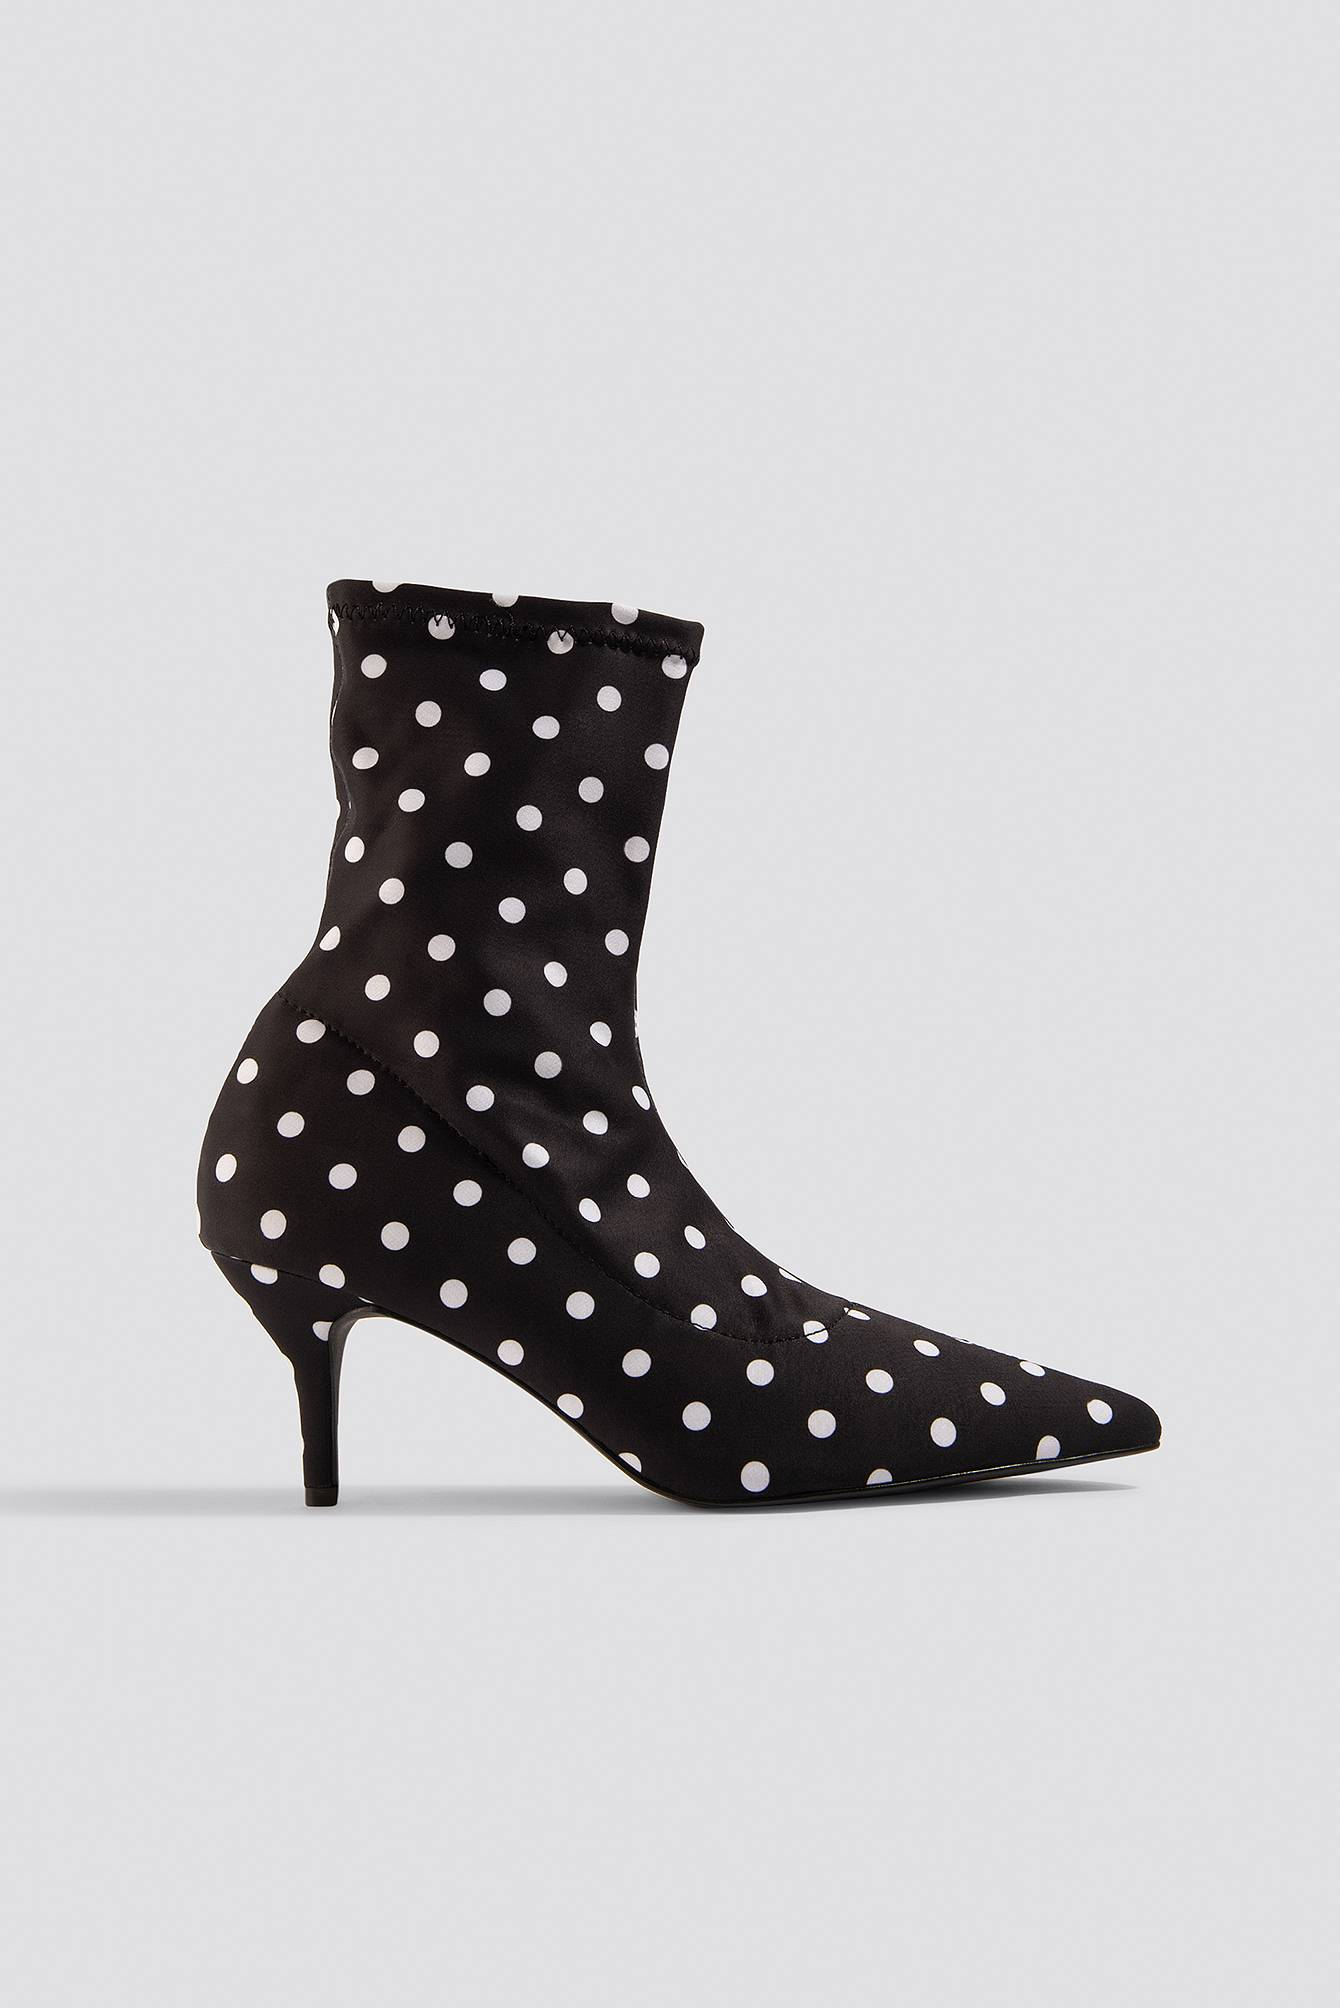 NA-KD Shoes Dotted Sock Boots - Black